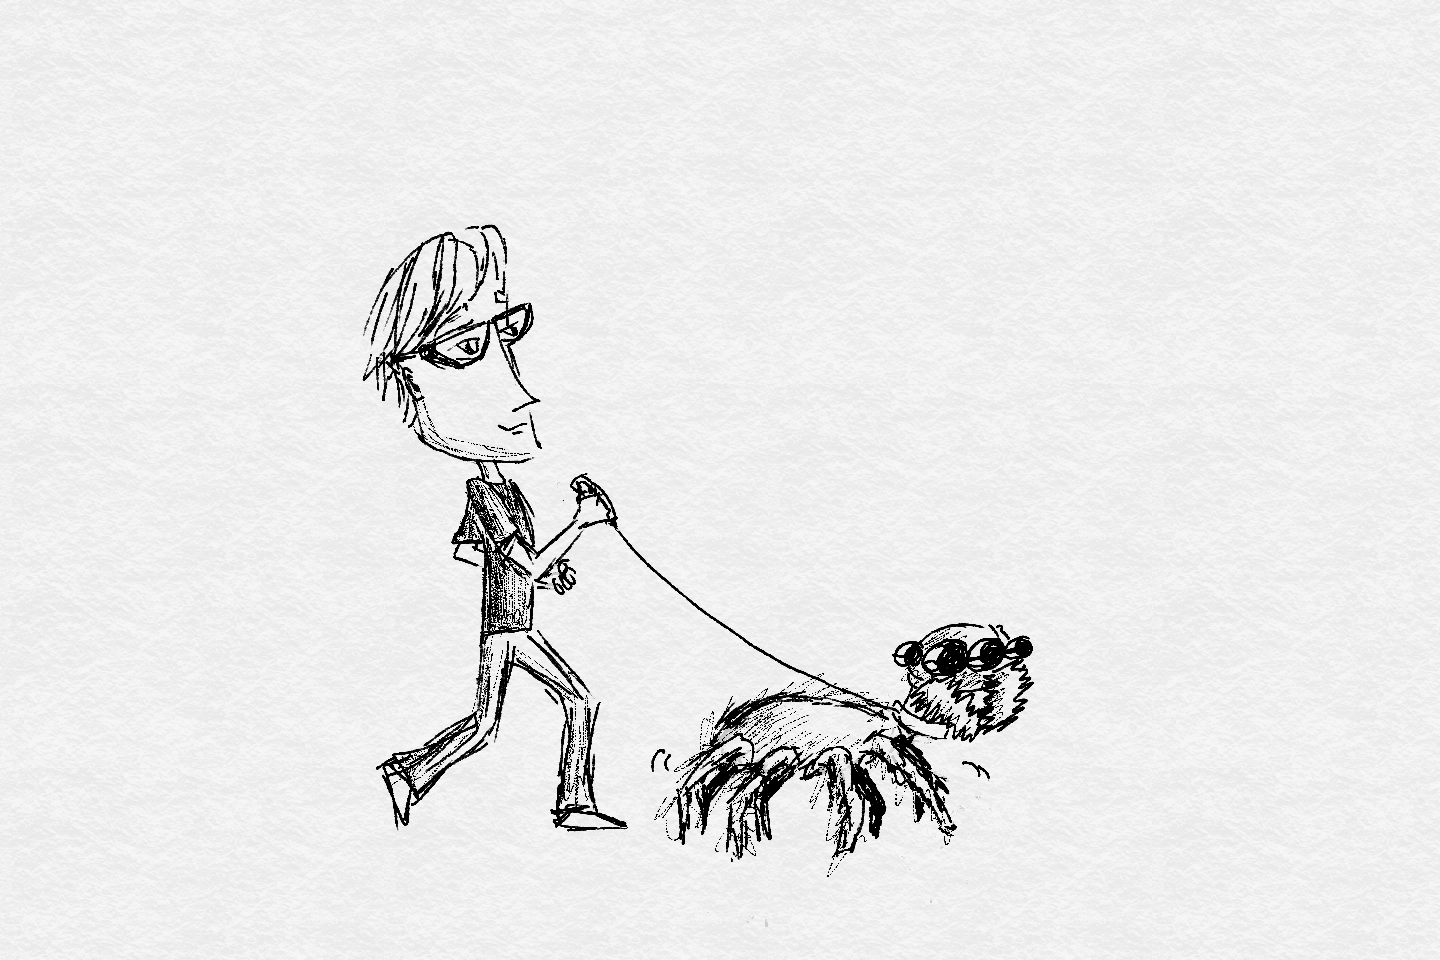 A man geeking out by walking his giant pet spider.